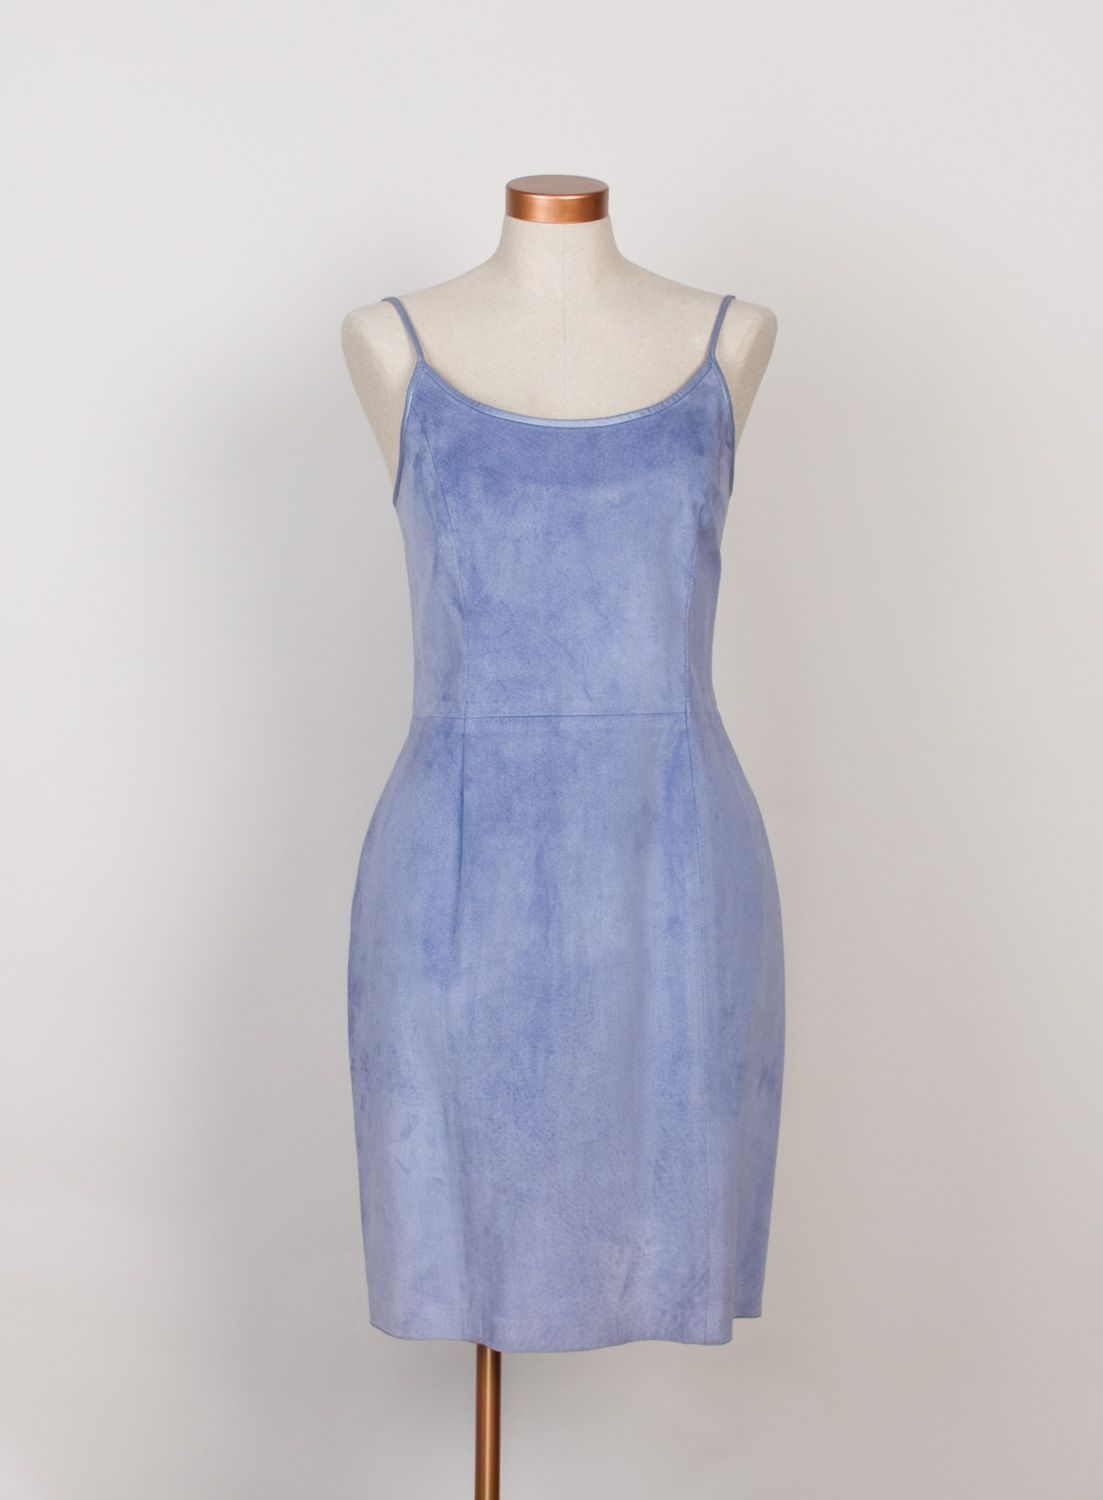 1990s vintage lavender blue suede dress by Danier